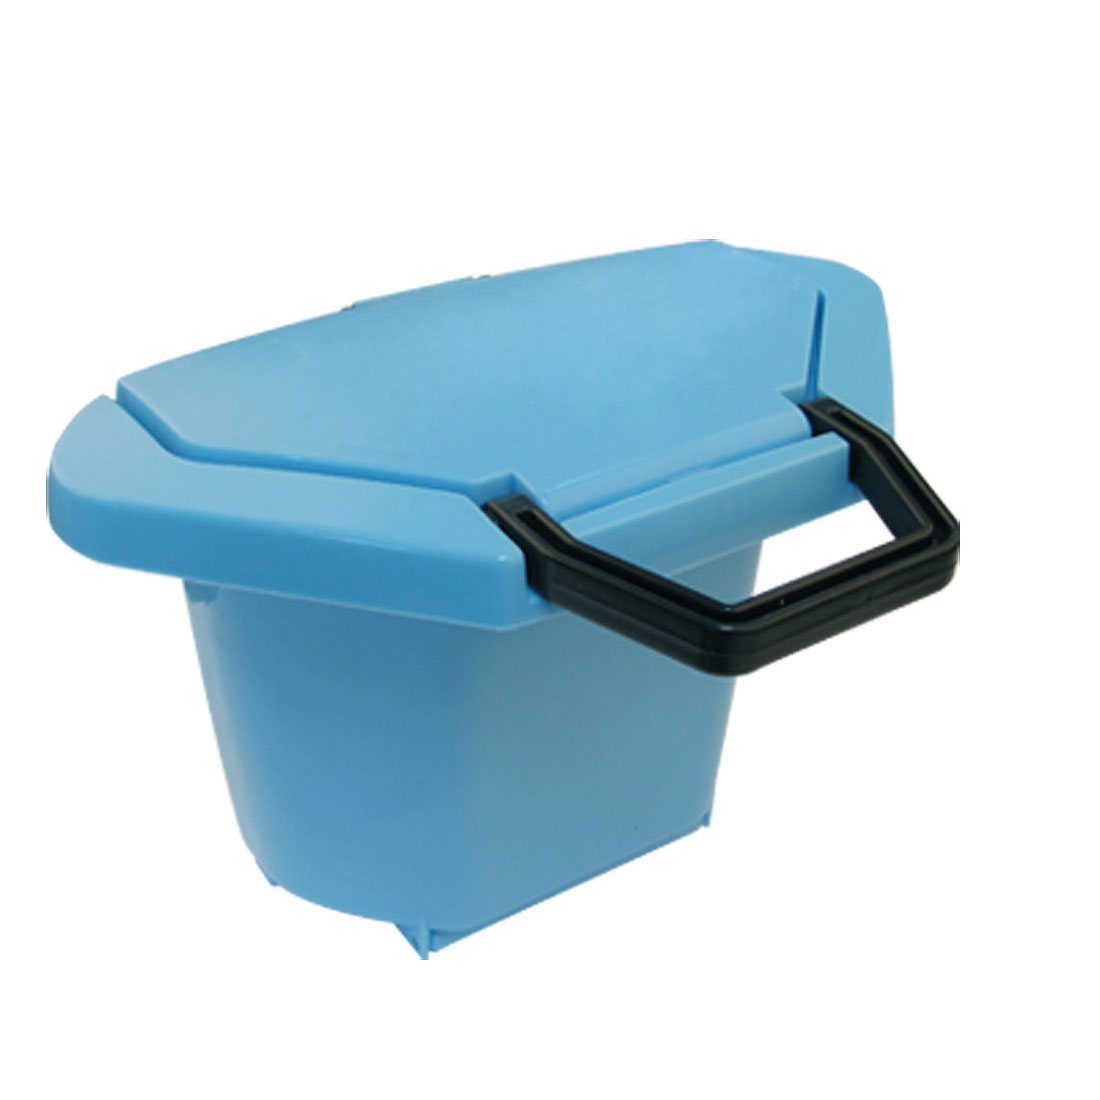 Blue Plastic Trash Can Waste Basket Litter Bin w Suction Cup